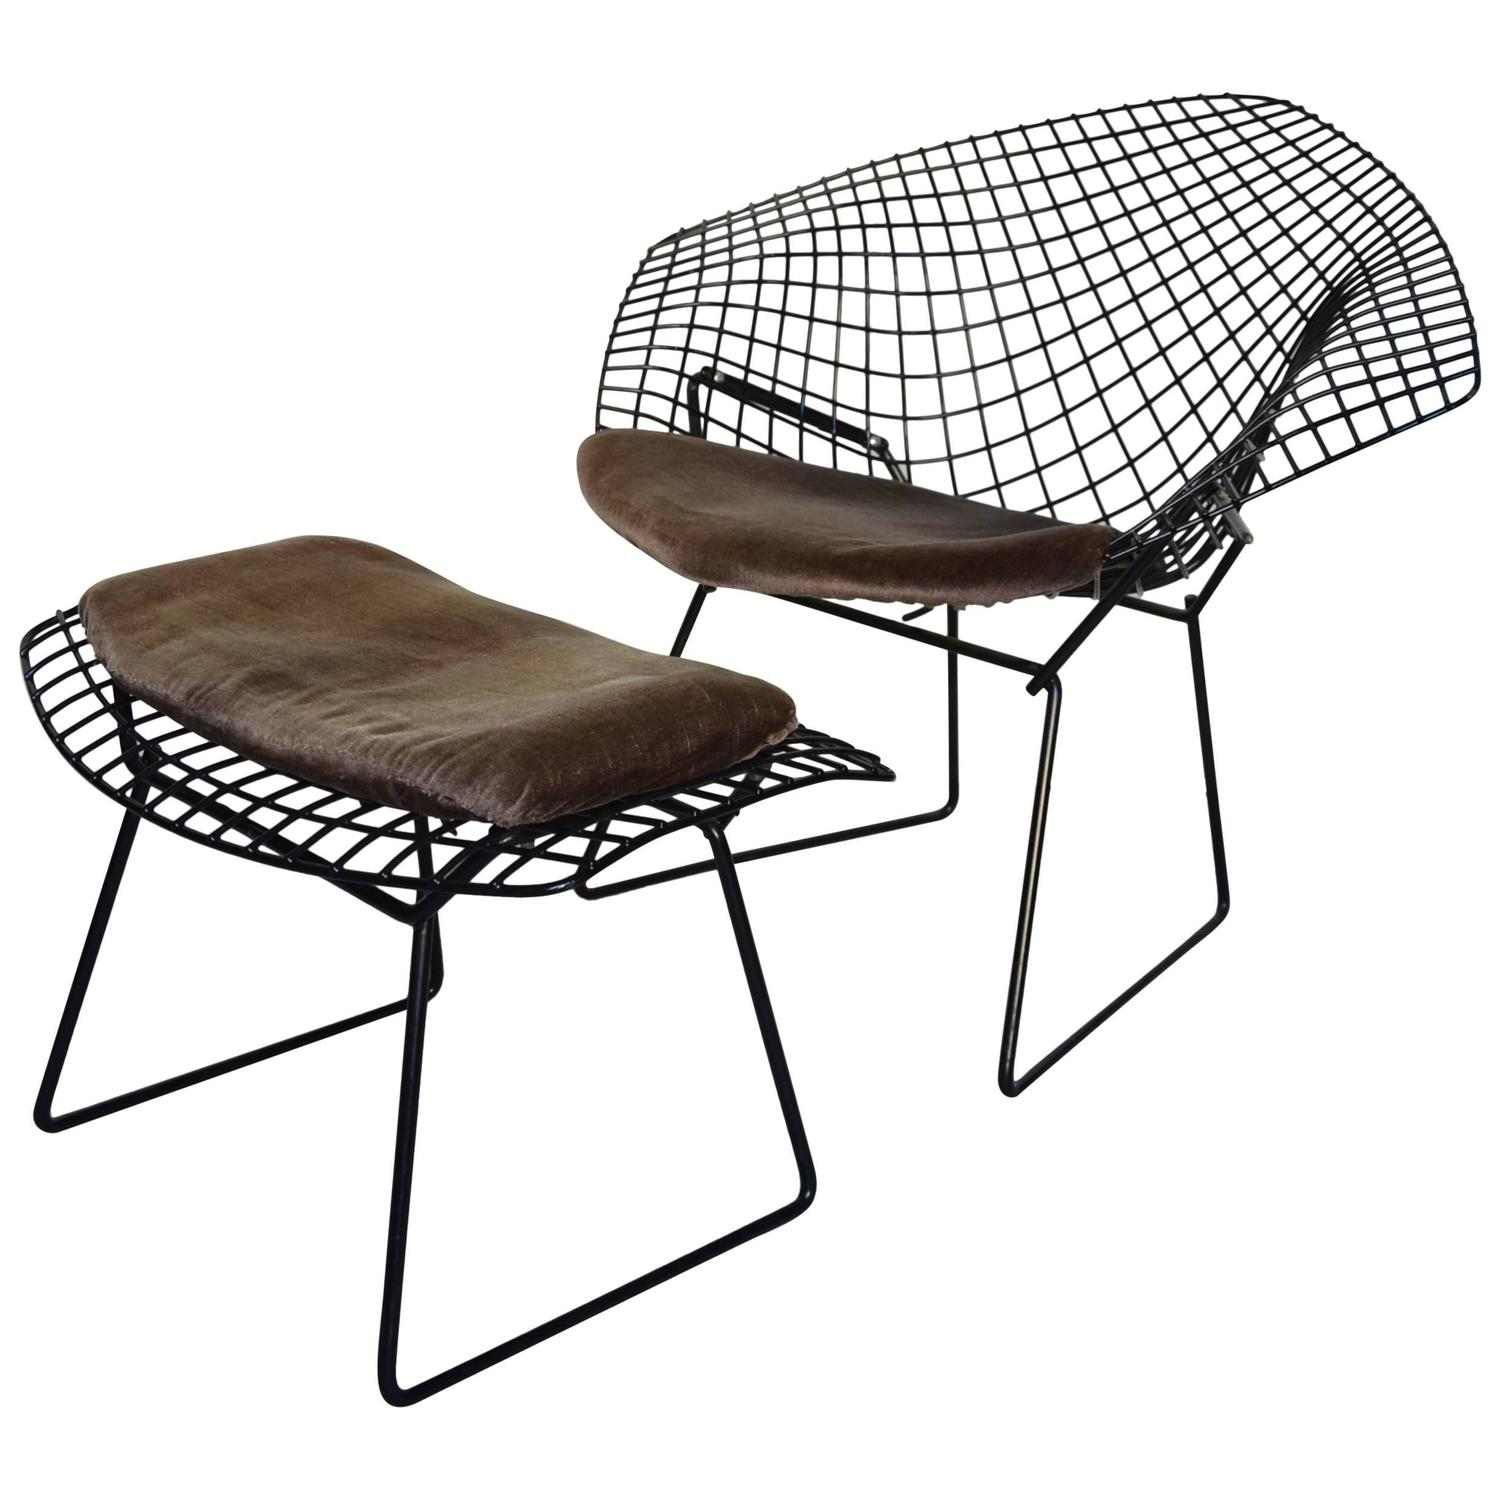 Harry Bertoia Diamond Chair and Footstool Knoll Edition at 1stdibs